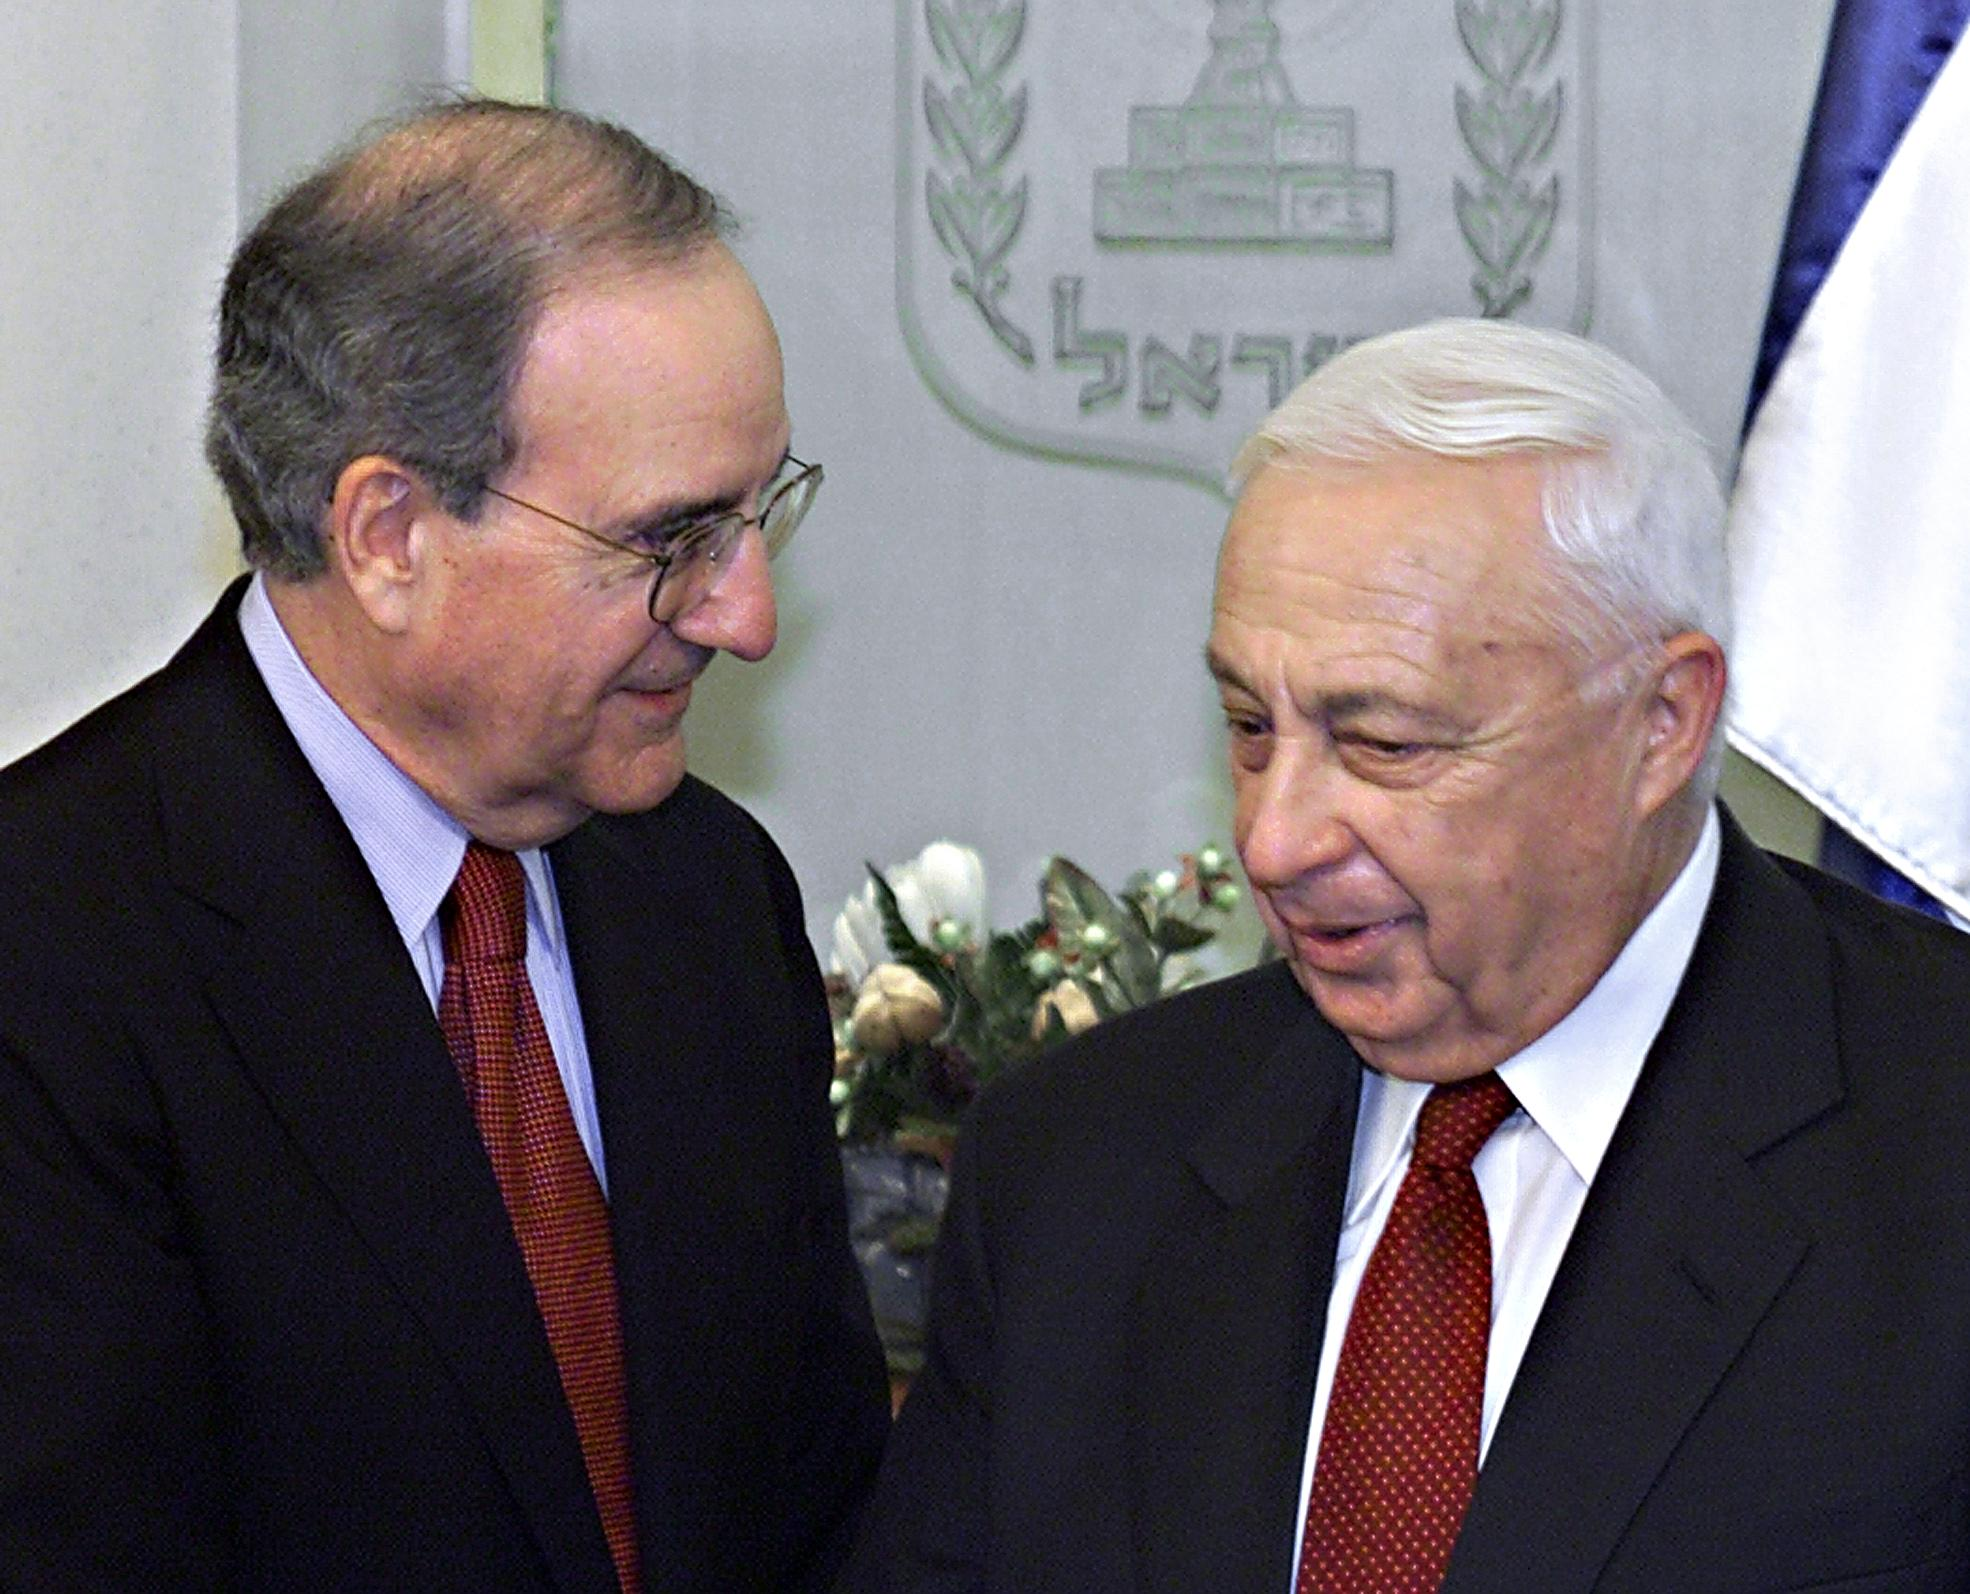 Mitchell speaks to former Israel PM Ariel Sharon, while serving as head of commission on Israel and Palestine in 2001.